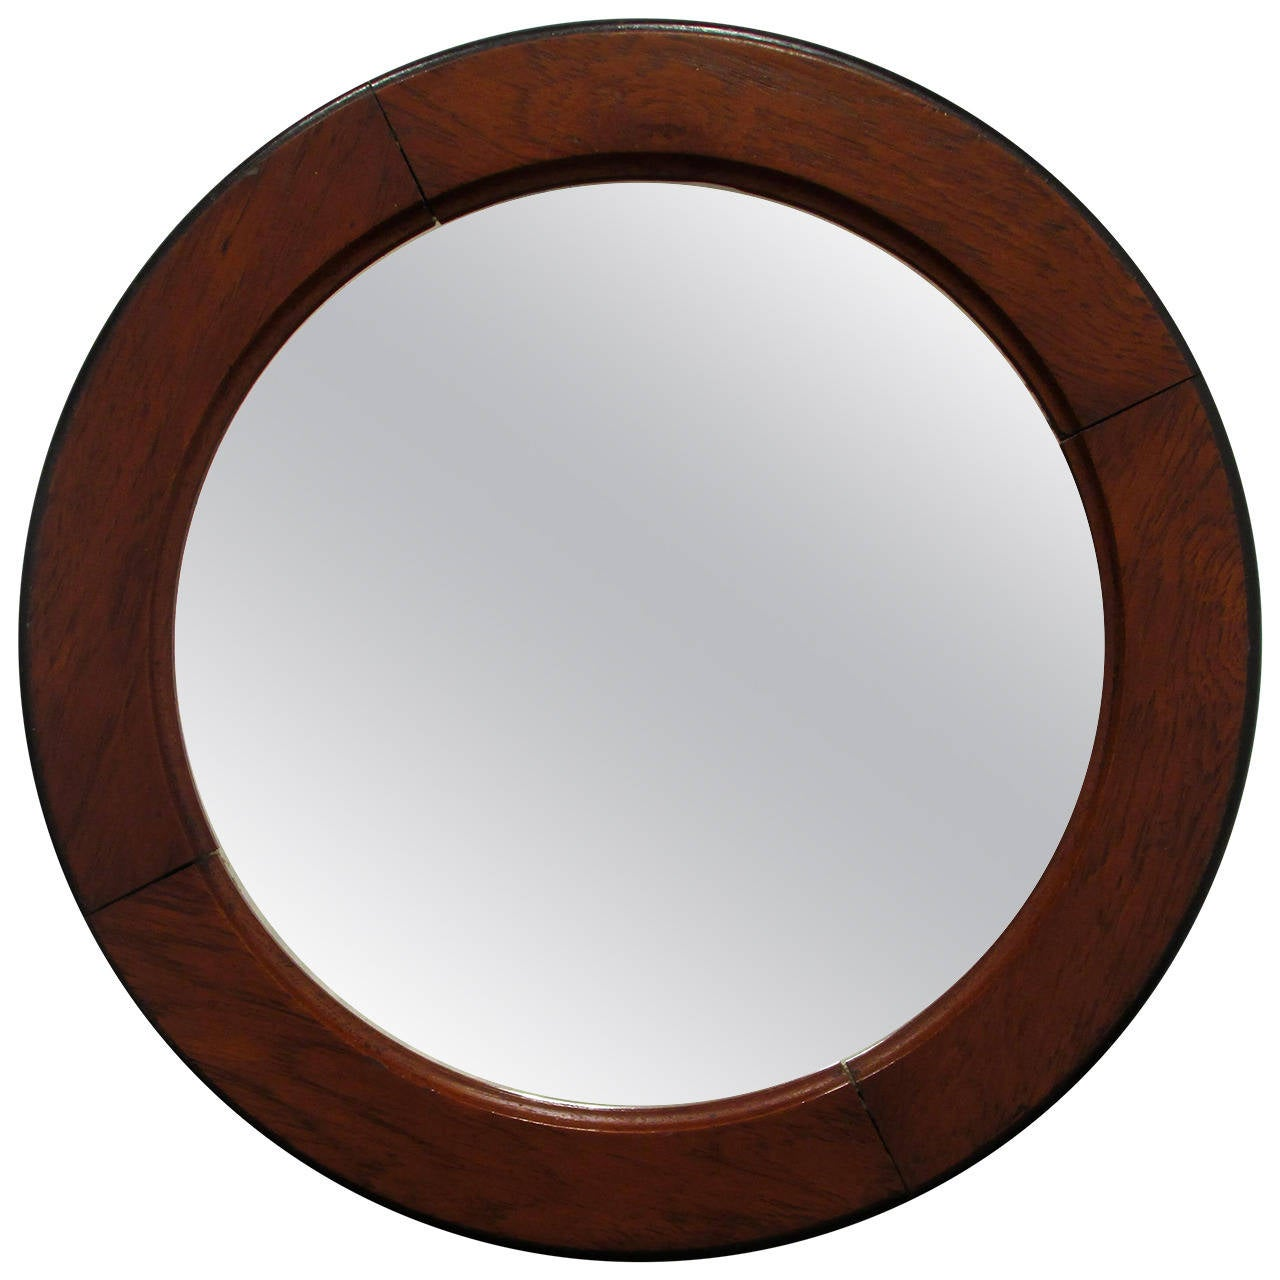 Concave mirror for sale at 1stdibs for Mirror of mirror